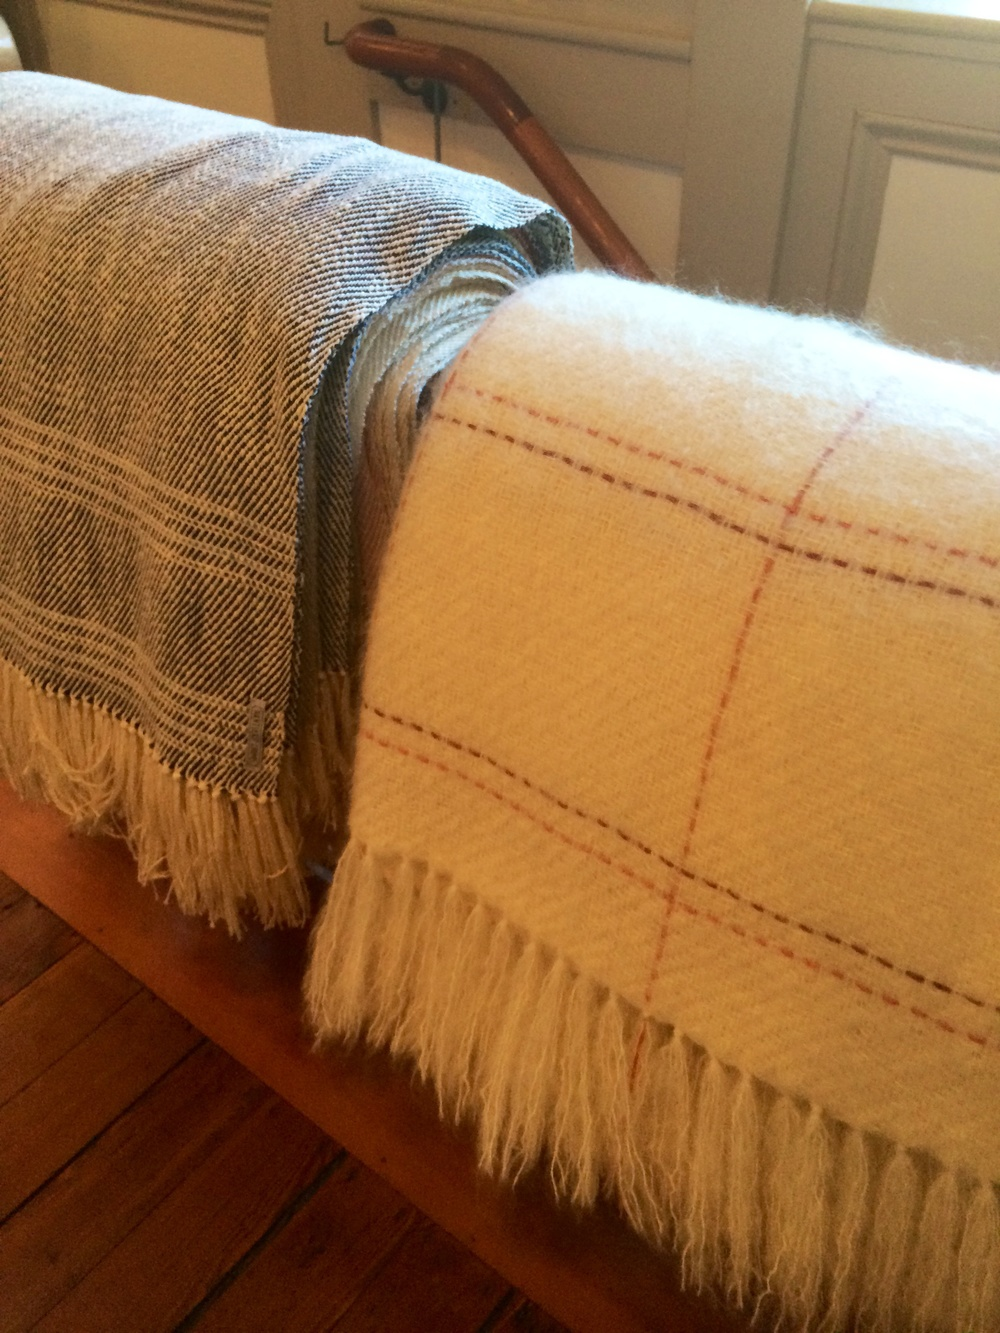 Freshly woven throws made right upstairs.